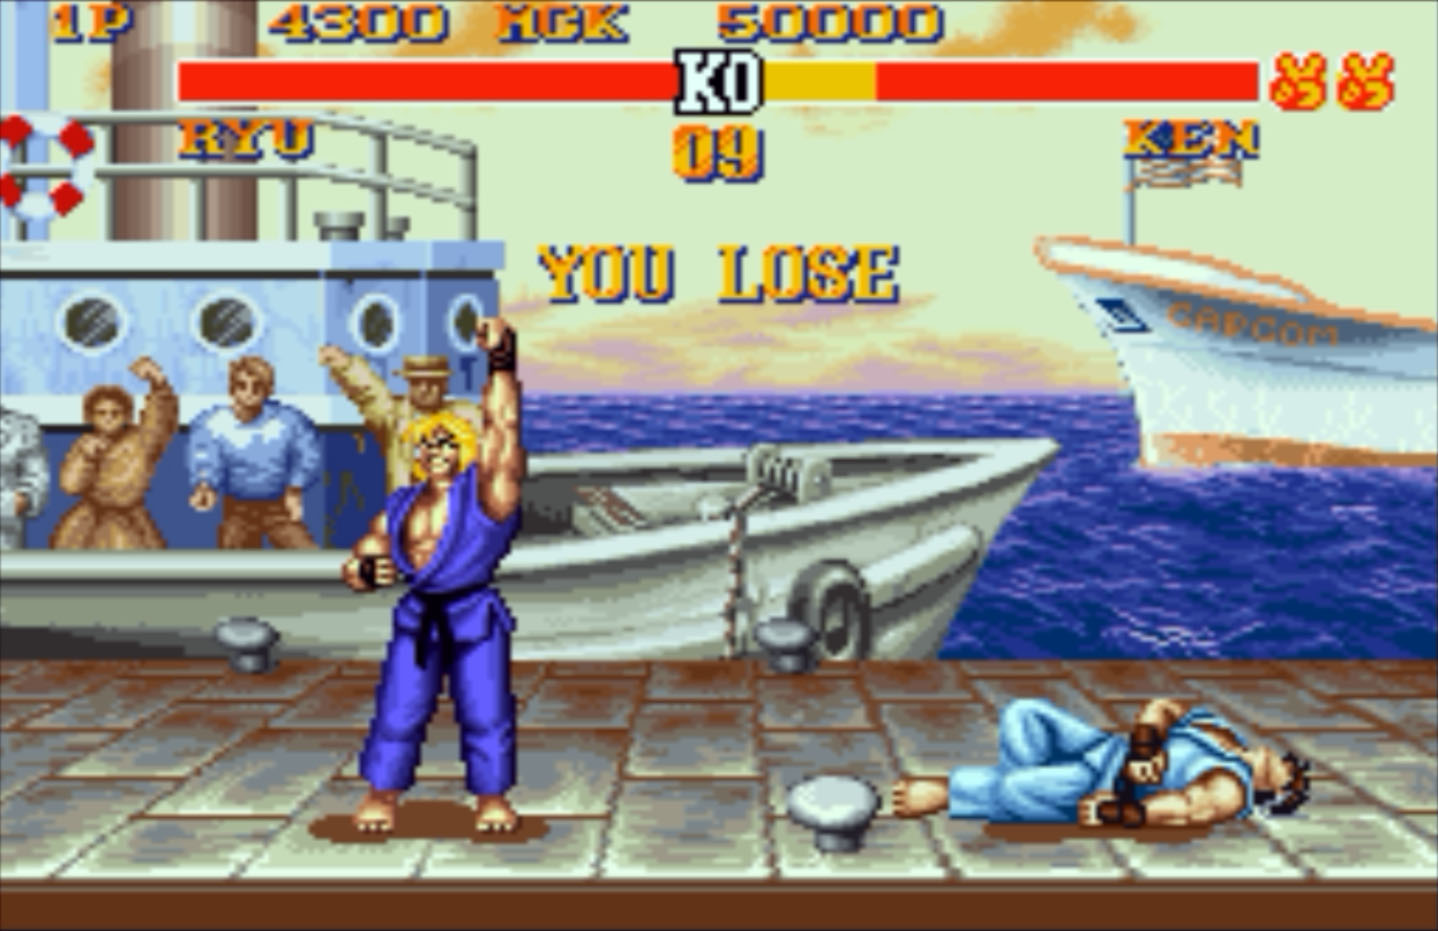 You Lose Street Fighter II #3